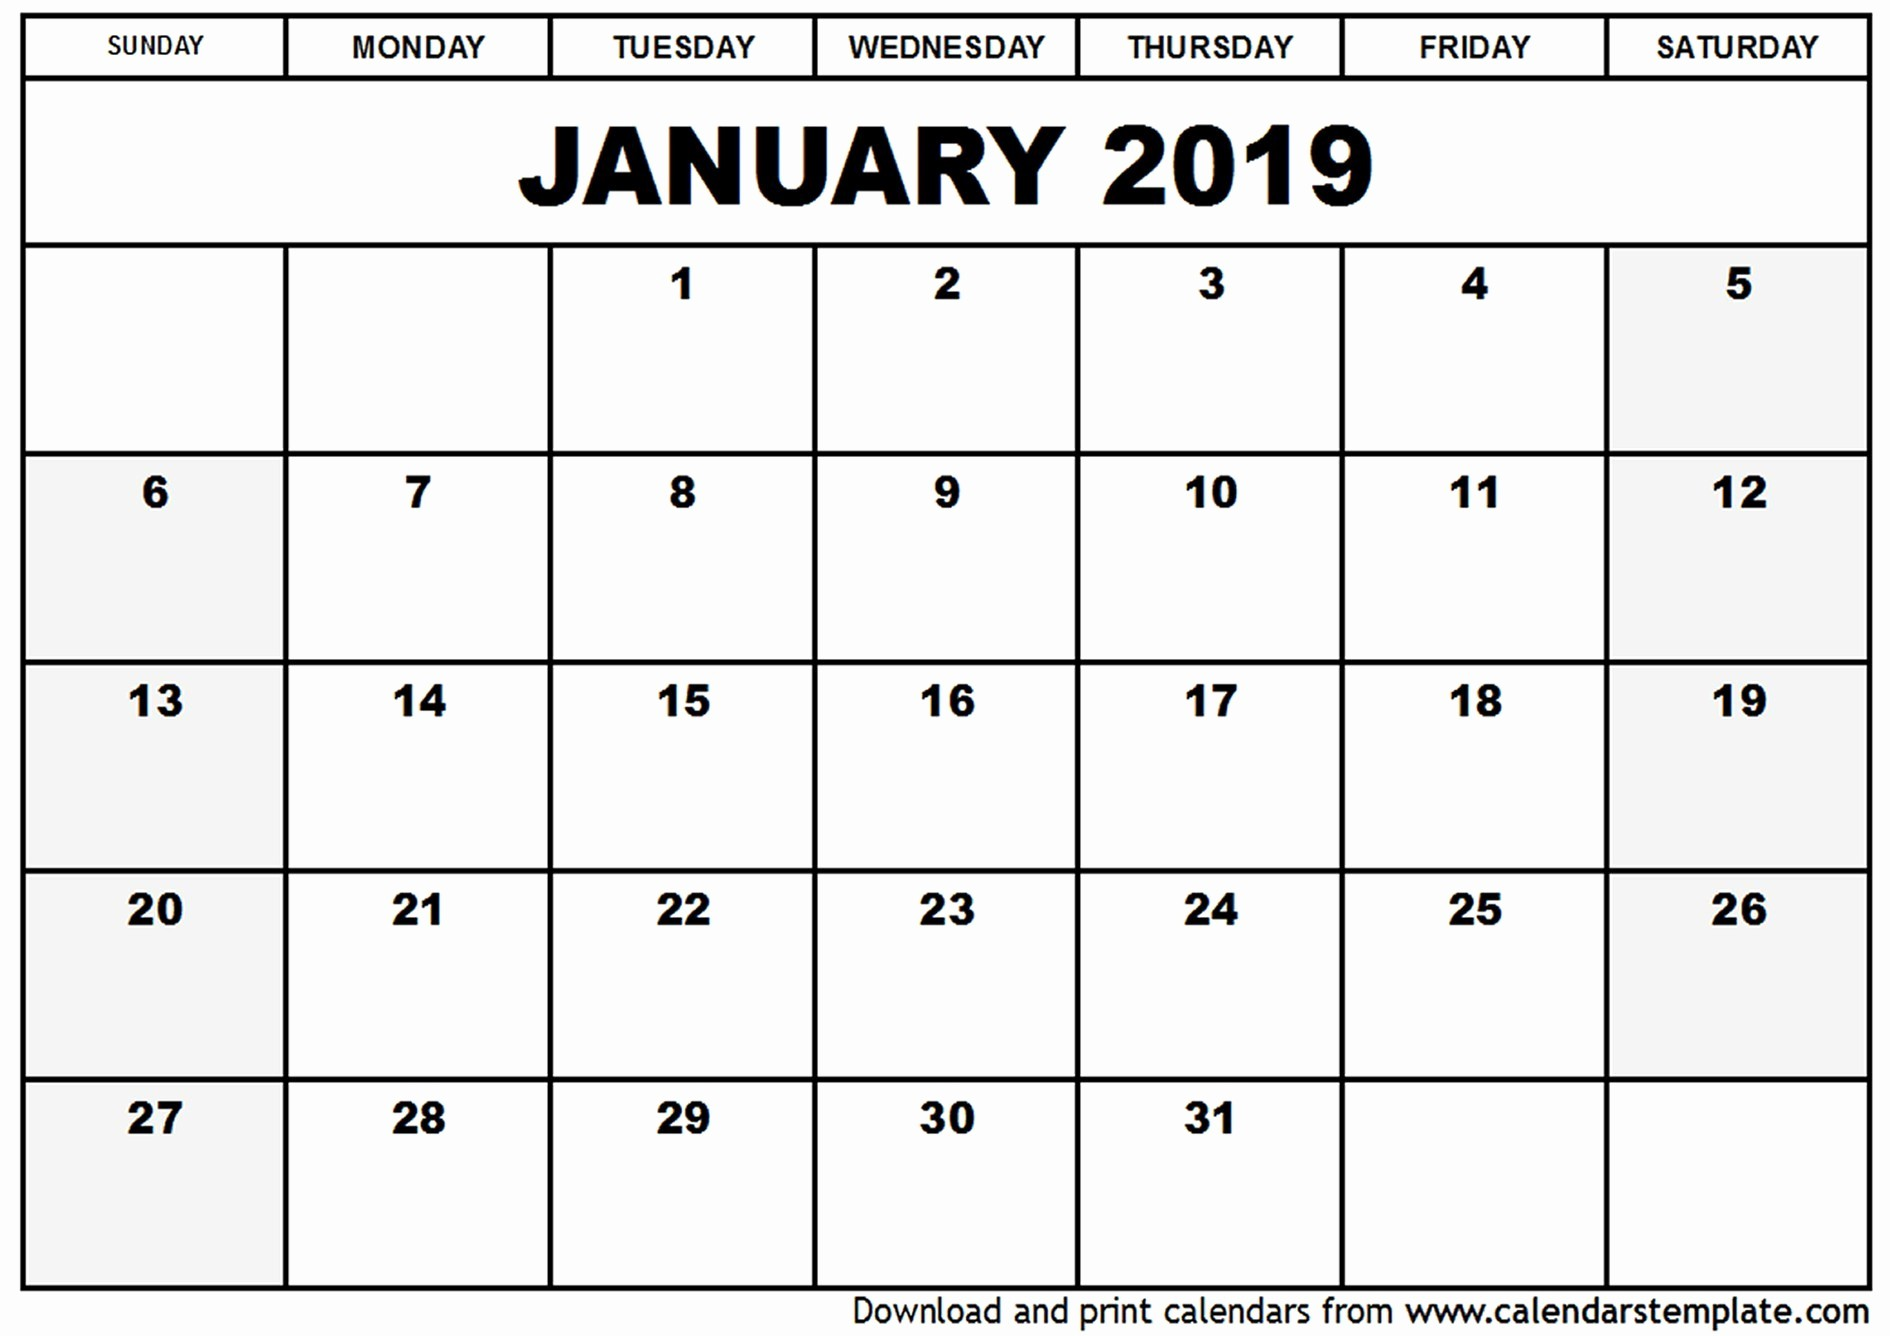 Printable Monday Through Friday Calendar Inspirational Monday Through Friday Calendar Template January 2019